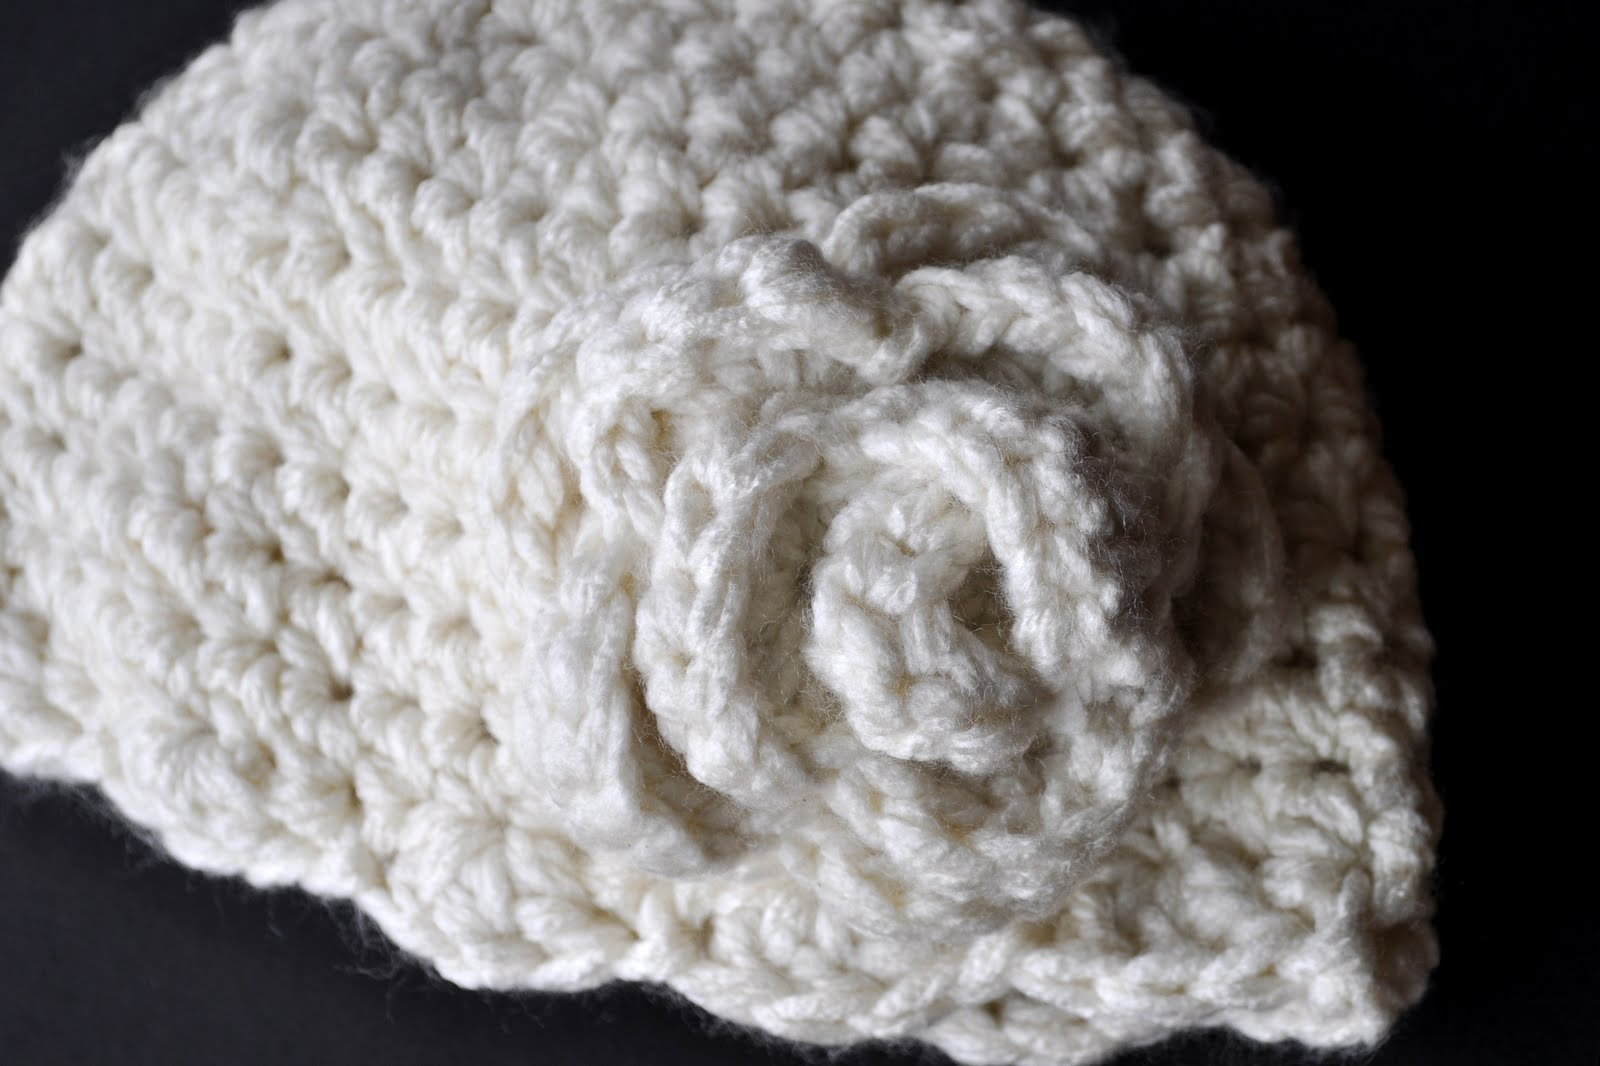 Crochet Patterns Free Leaf : Craft ideas, craft solutions: {free crochet leaf patterns ...